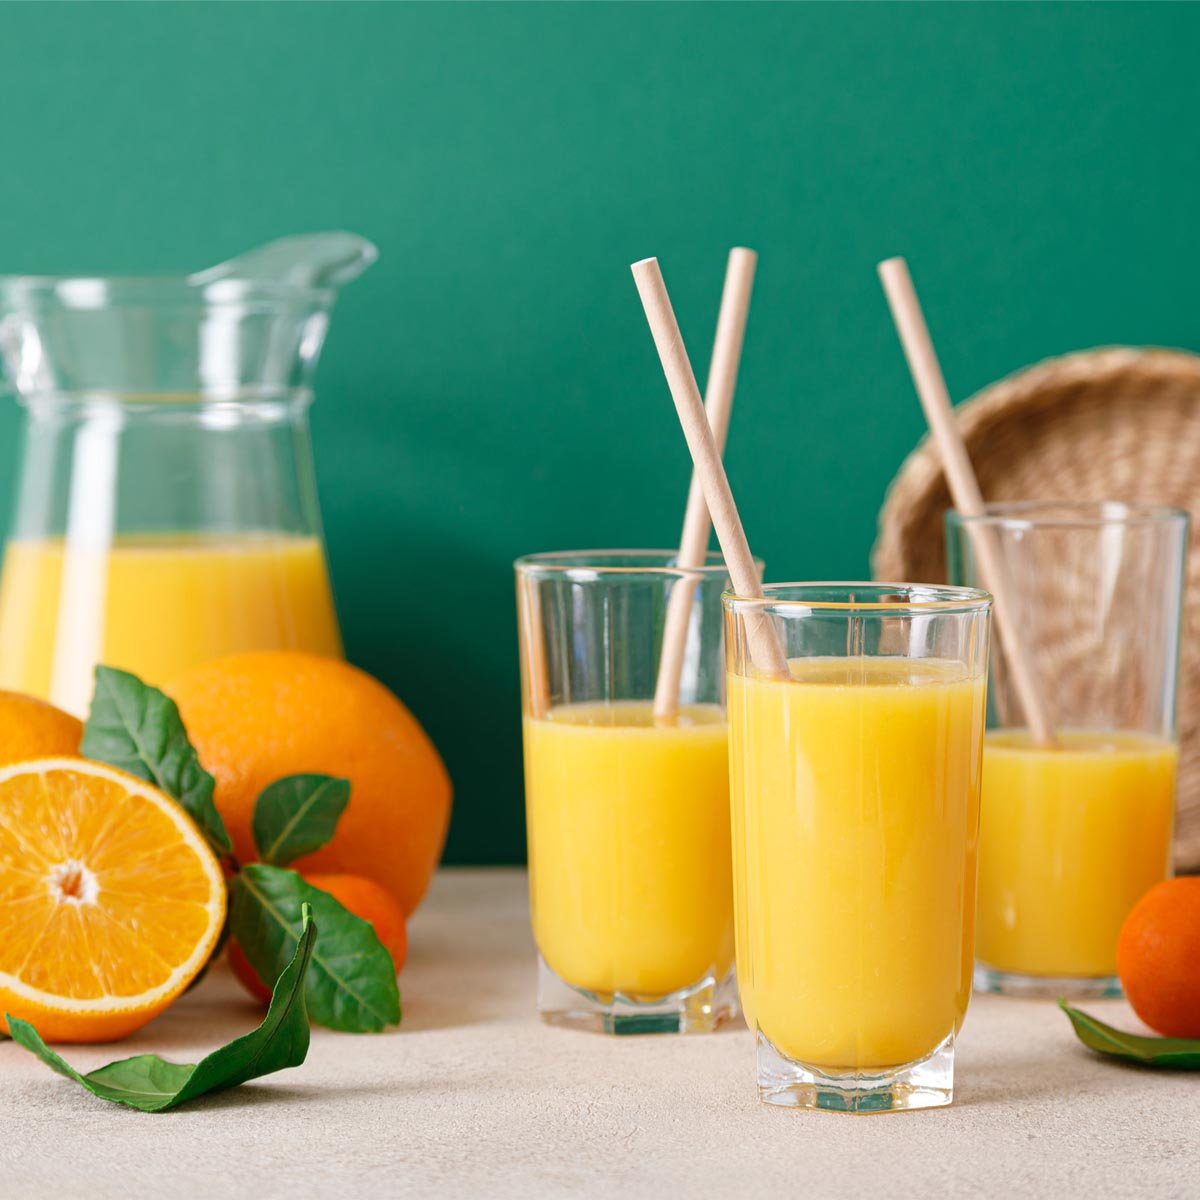 An electrolytes drink sits in glasses and a pitcher surrounded by fresh oranges